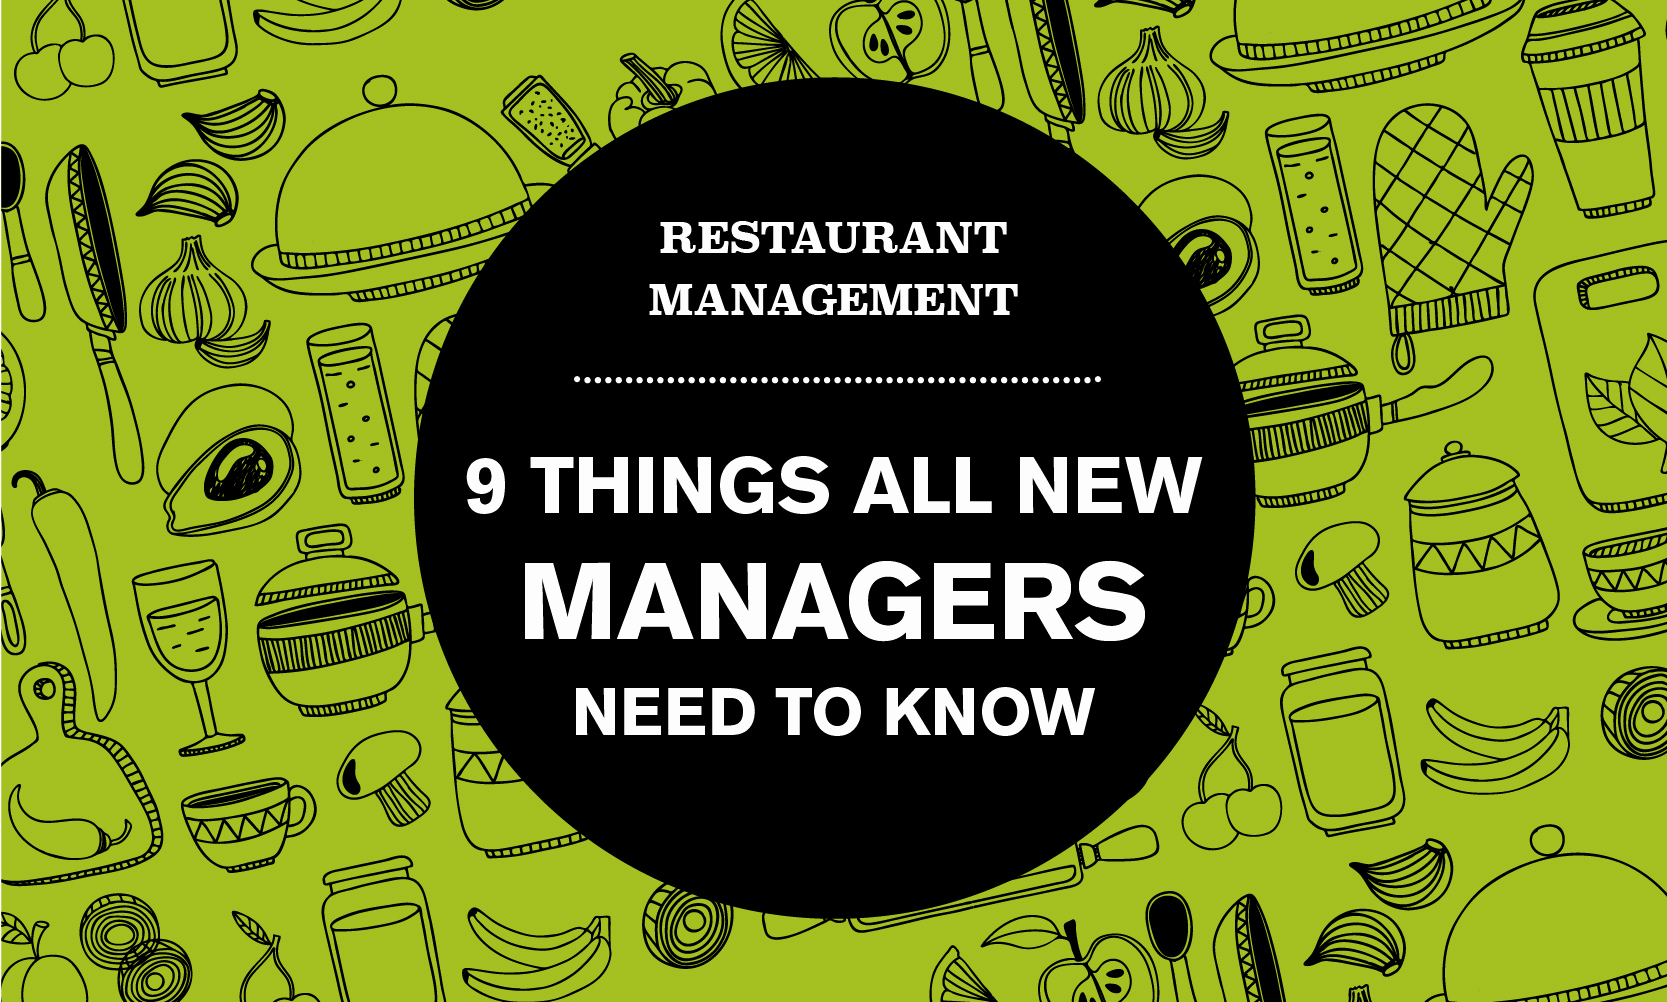 Restaurant Employee Hand Book Best Of Restaurant Management Tips What Every New Manager Needs